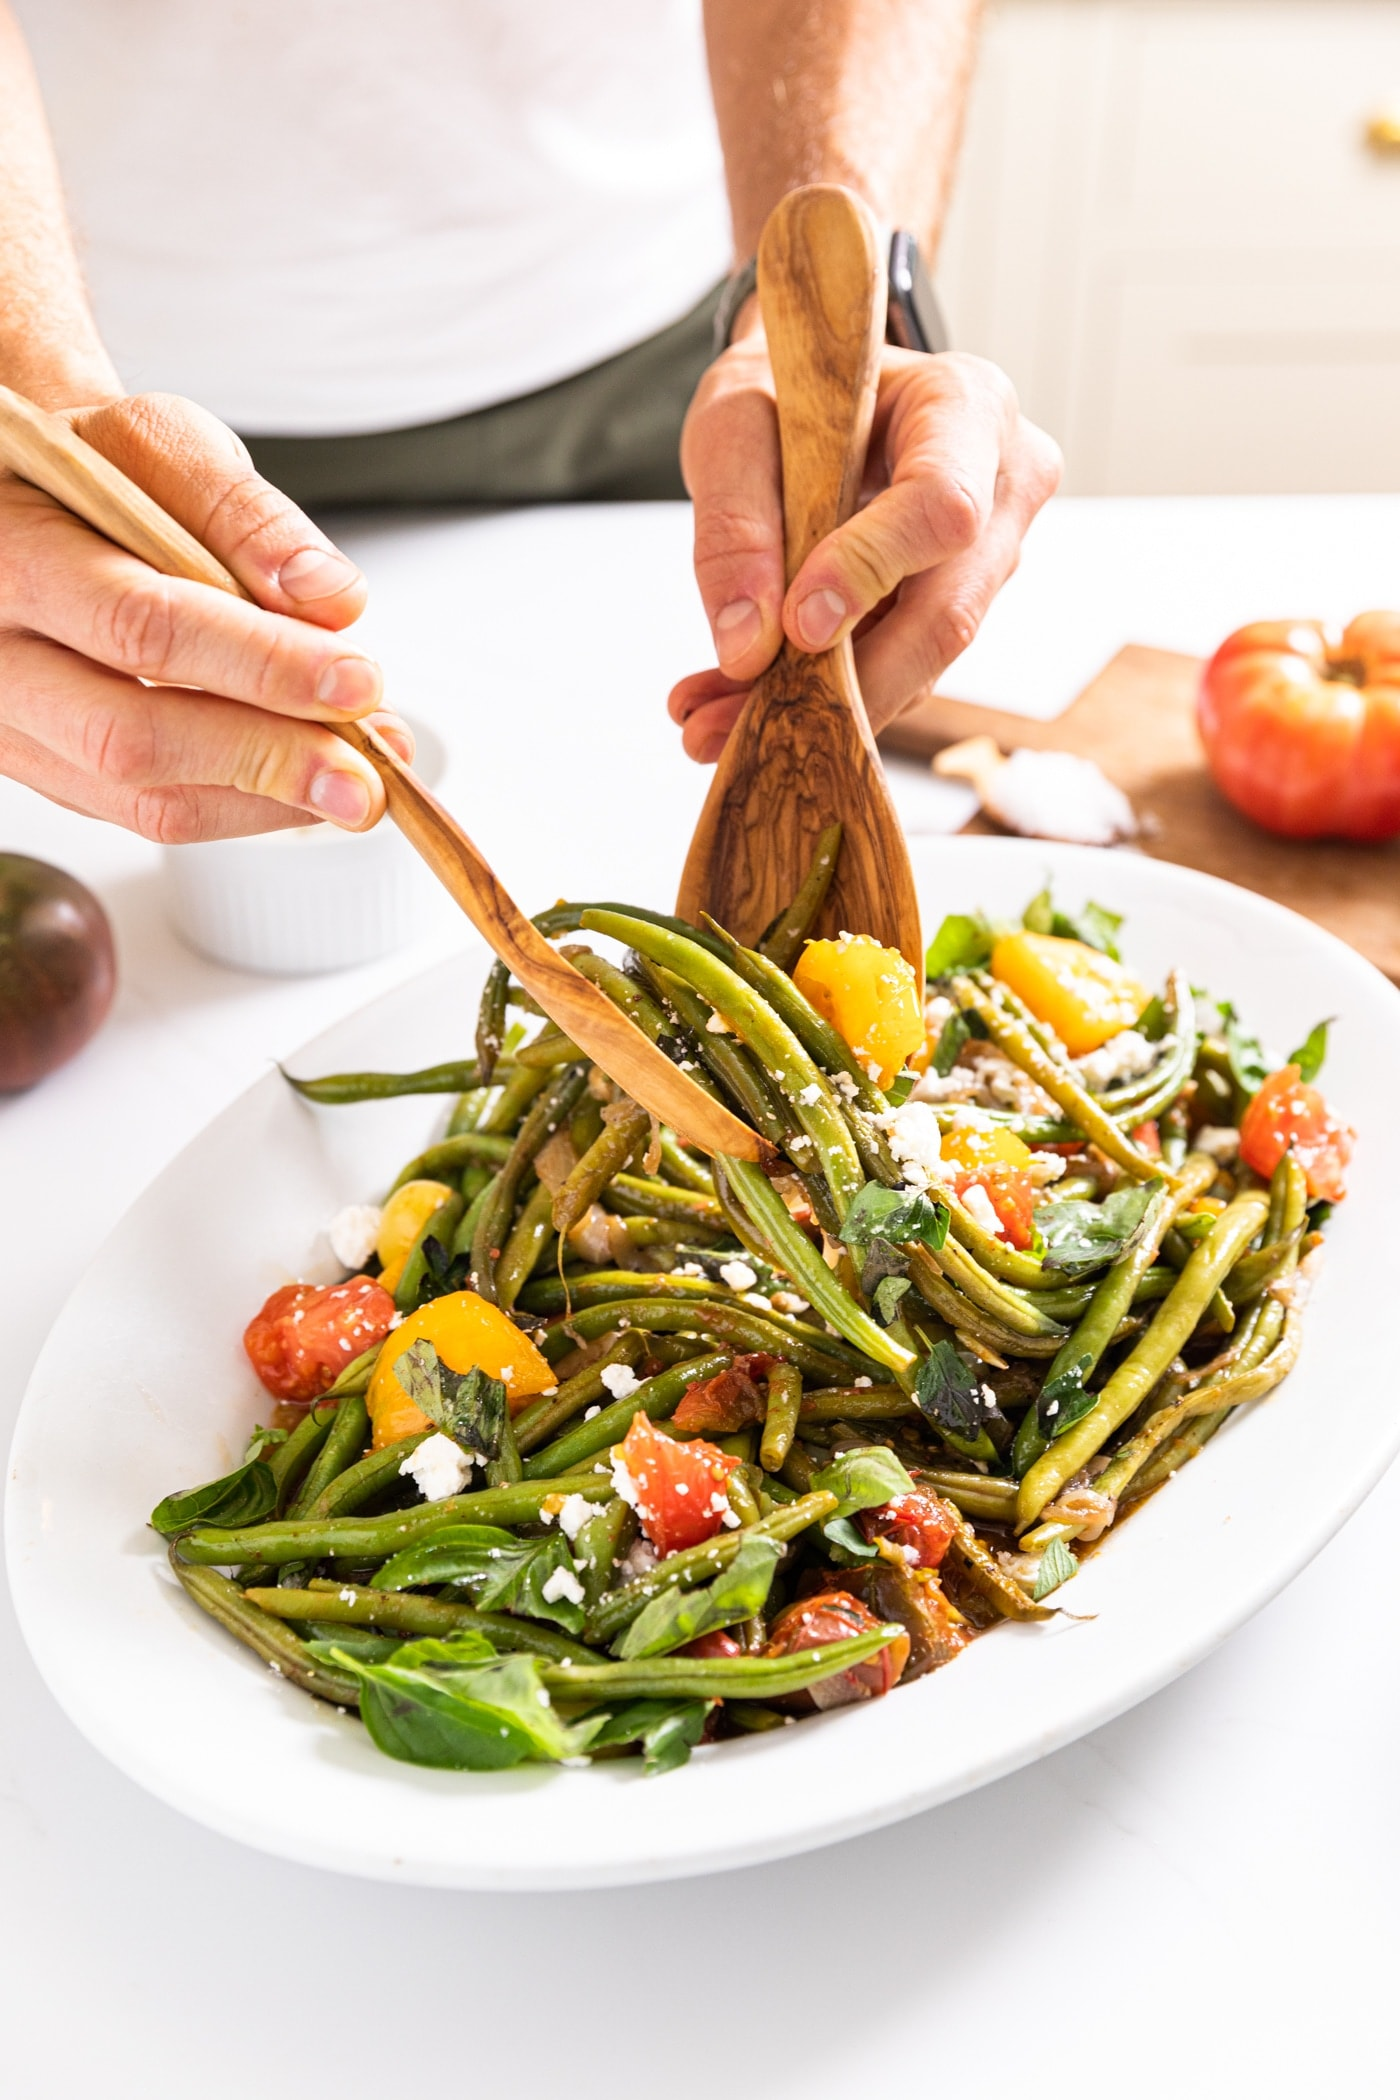 Two hands holding salad tongs pulling up serving of green beans and tomatoes from white platter sitting on white countertop with bright red tomato in background